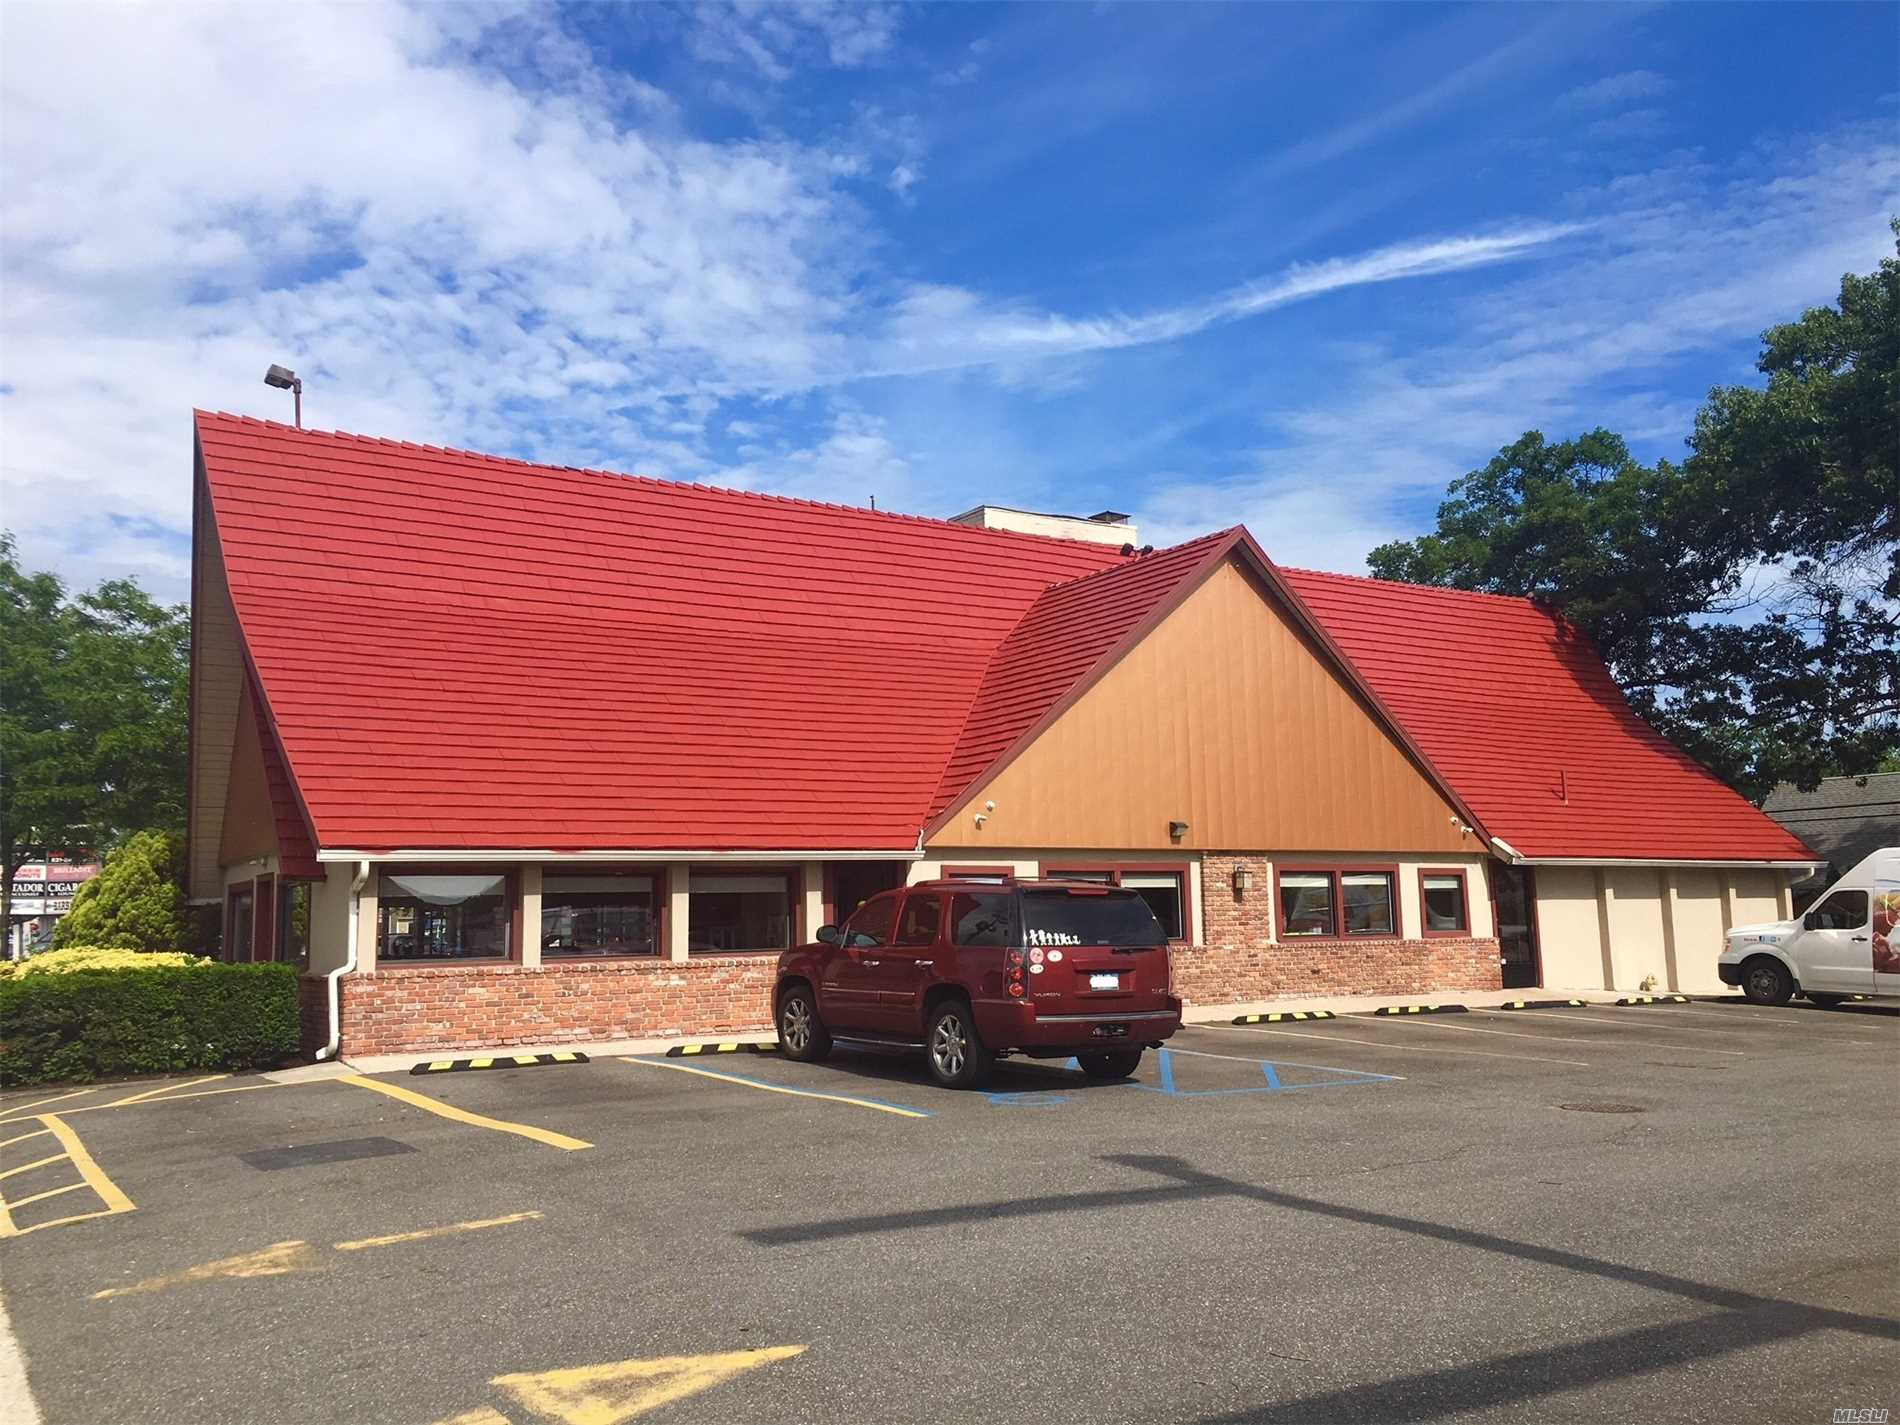 Former Restaurant Located Across From The Massapequa Park Lirr Station -- Completely Renovated In October 2016 (New Electric, Flooring, Tile, Booths, Tables, Kitchen Equipment. Turn-Key Operation For The Right Business. Two Handicap Accessible Restrooms. Seating For 88 With 22 Parking Spaces. Office And Storage Space In Attic Space. Very Busy Location.